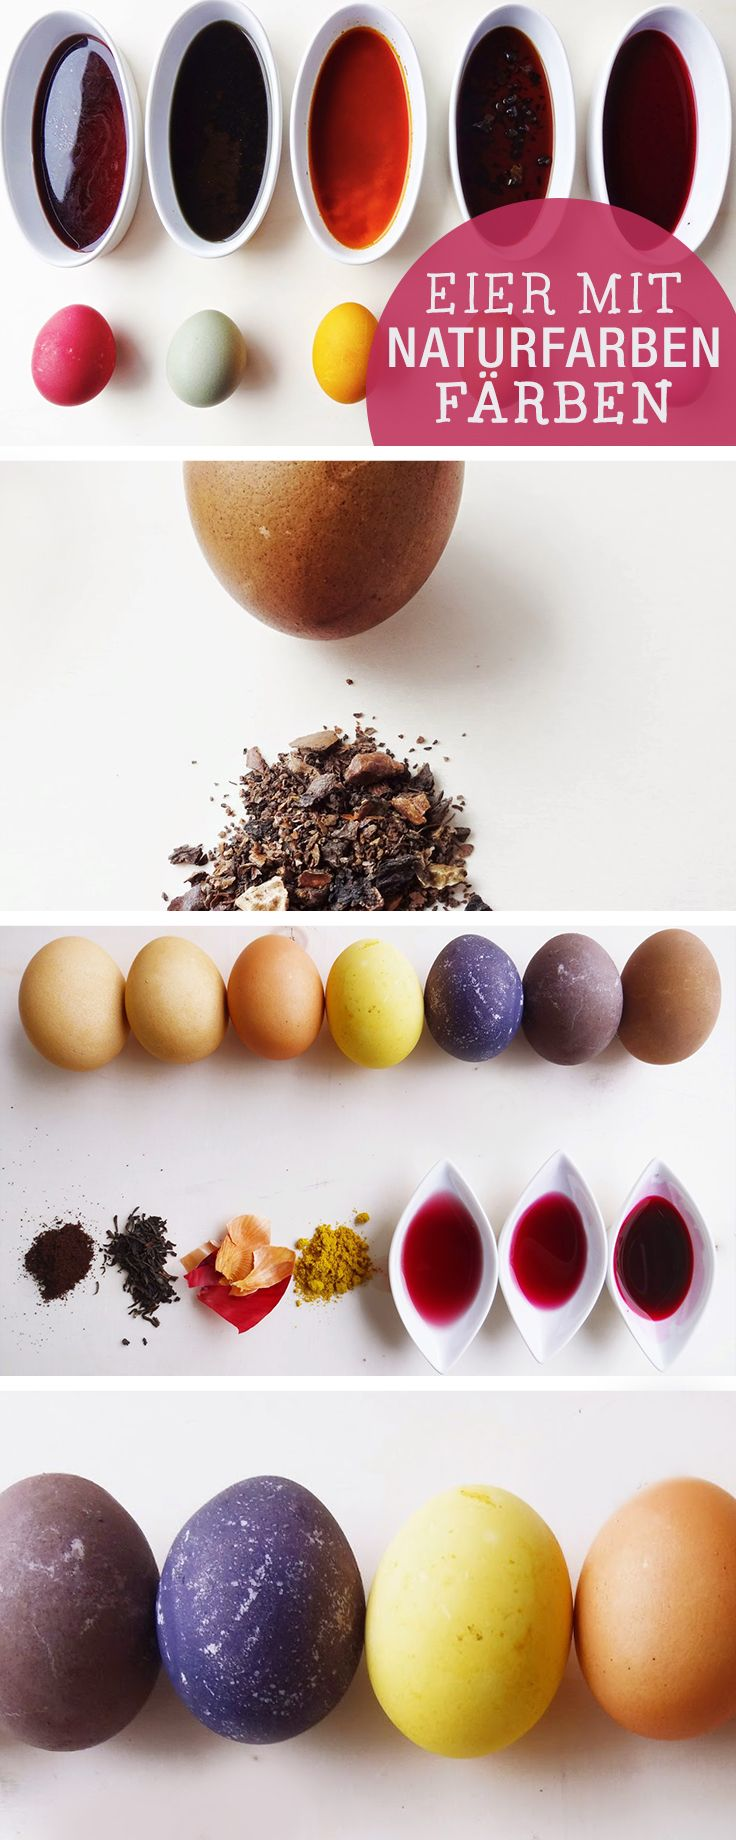 DIY-Anleitung: Ostereier mit Naturfarben färben / diy tutorial: how to colour easter eggs with natural colours via DaWanda.com